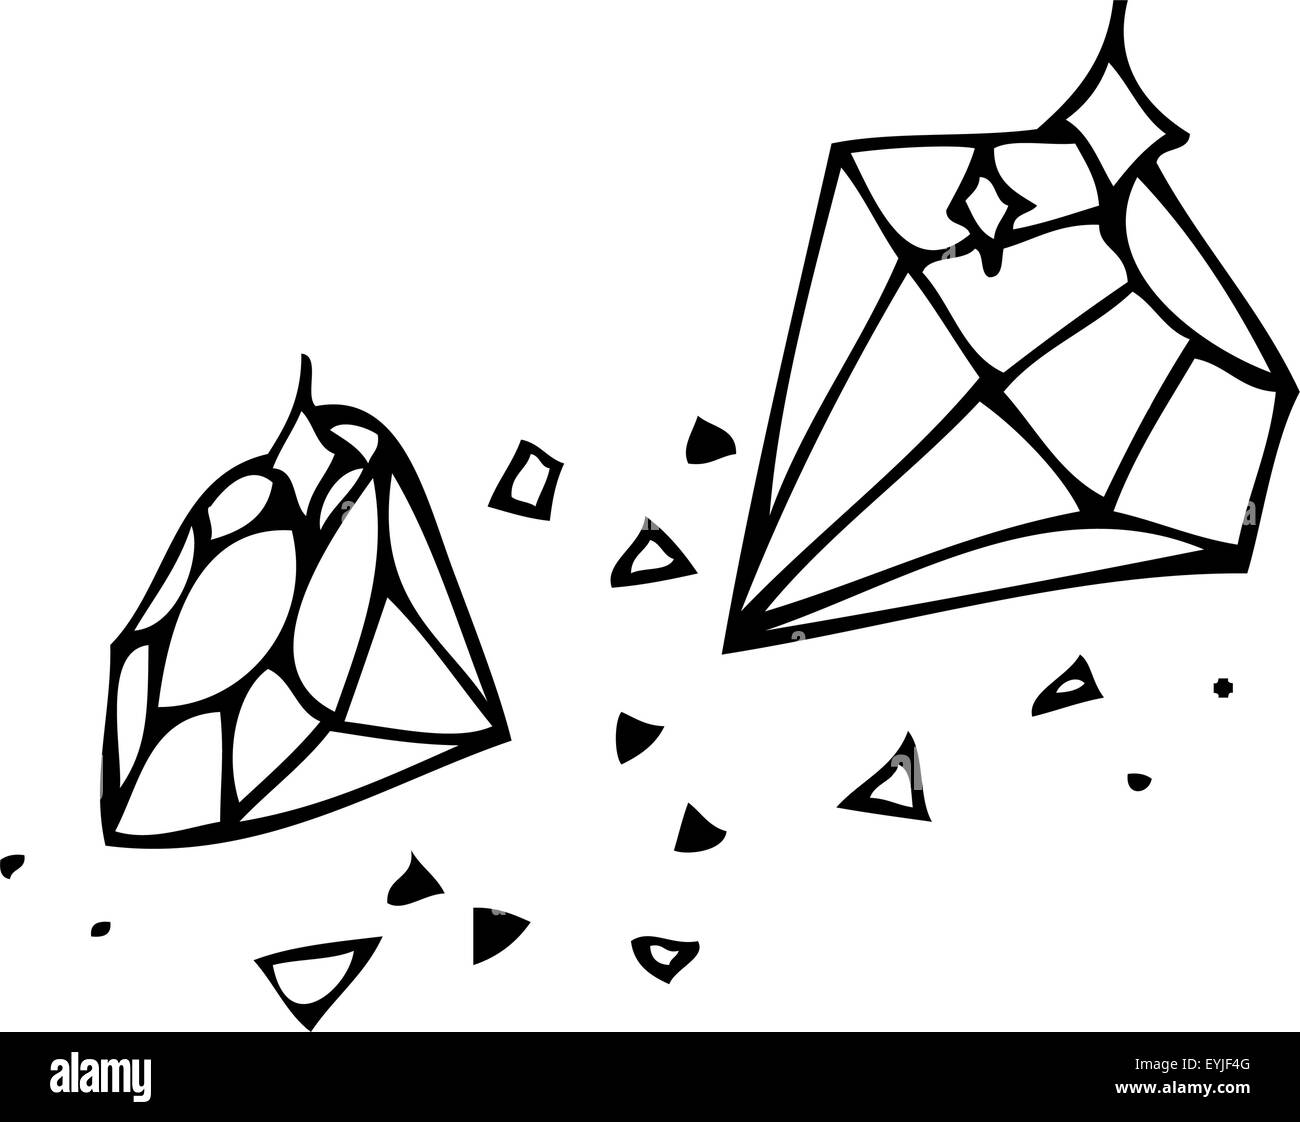 Vector graphics. Sketch. Brilliant Gems on a white background - Stock Image